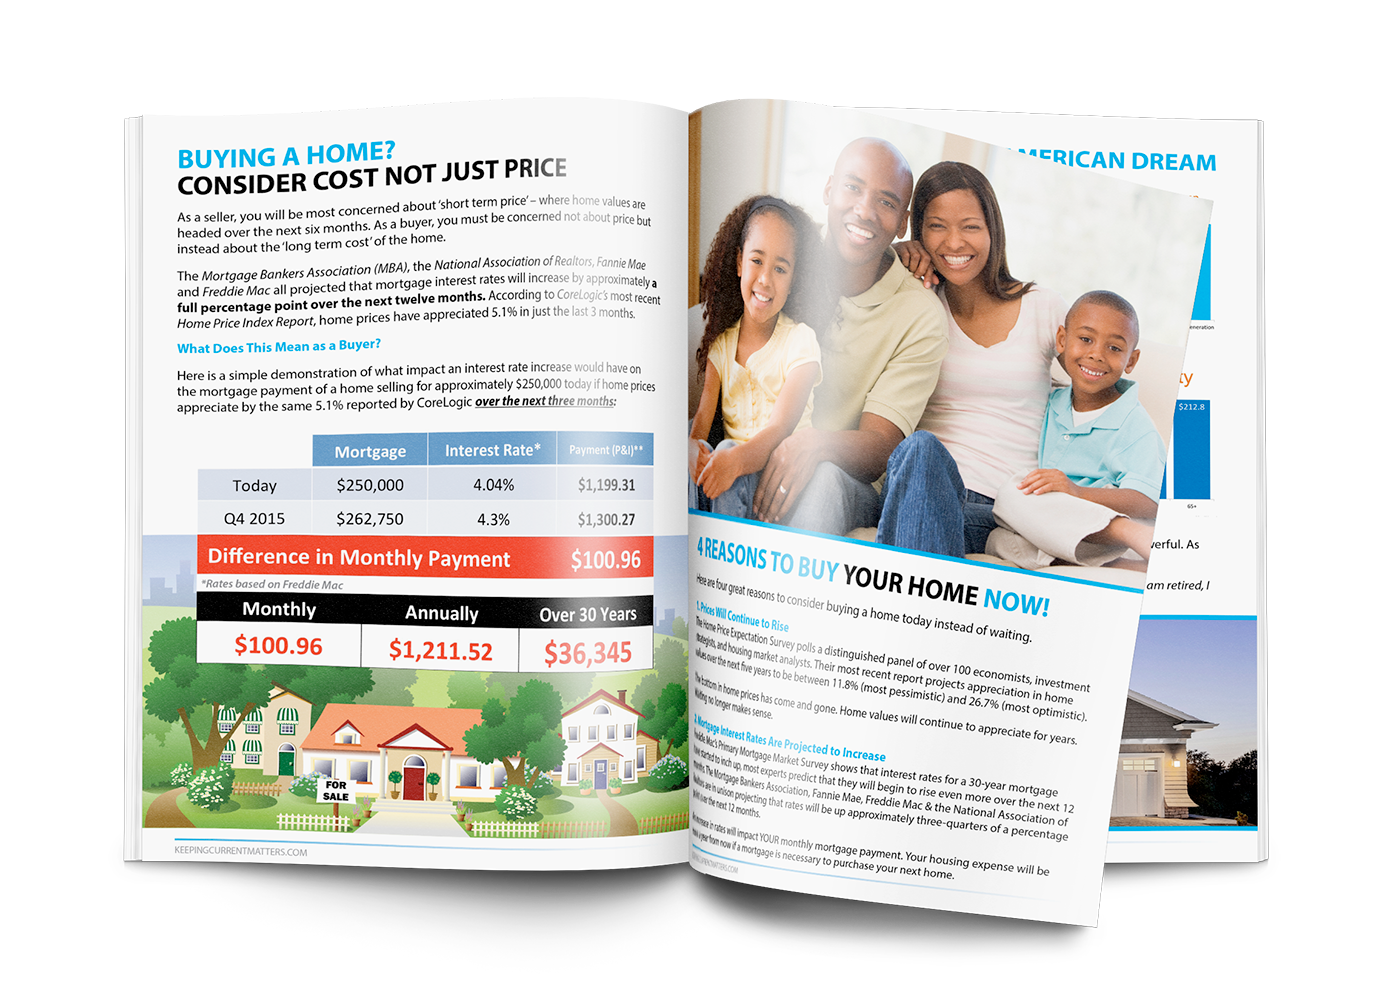 Things To Consider When Buying A Home   Summer 2015   Keeping Current Matters